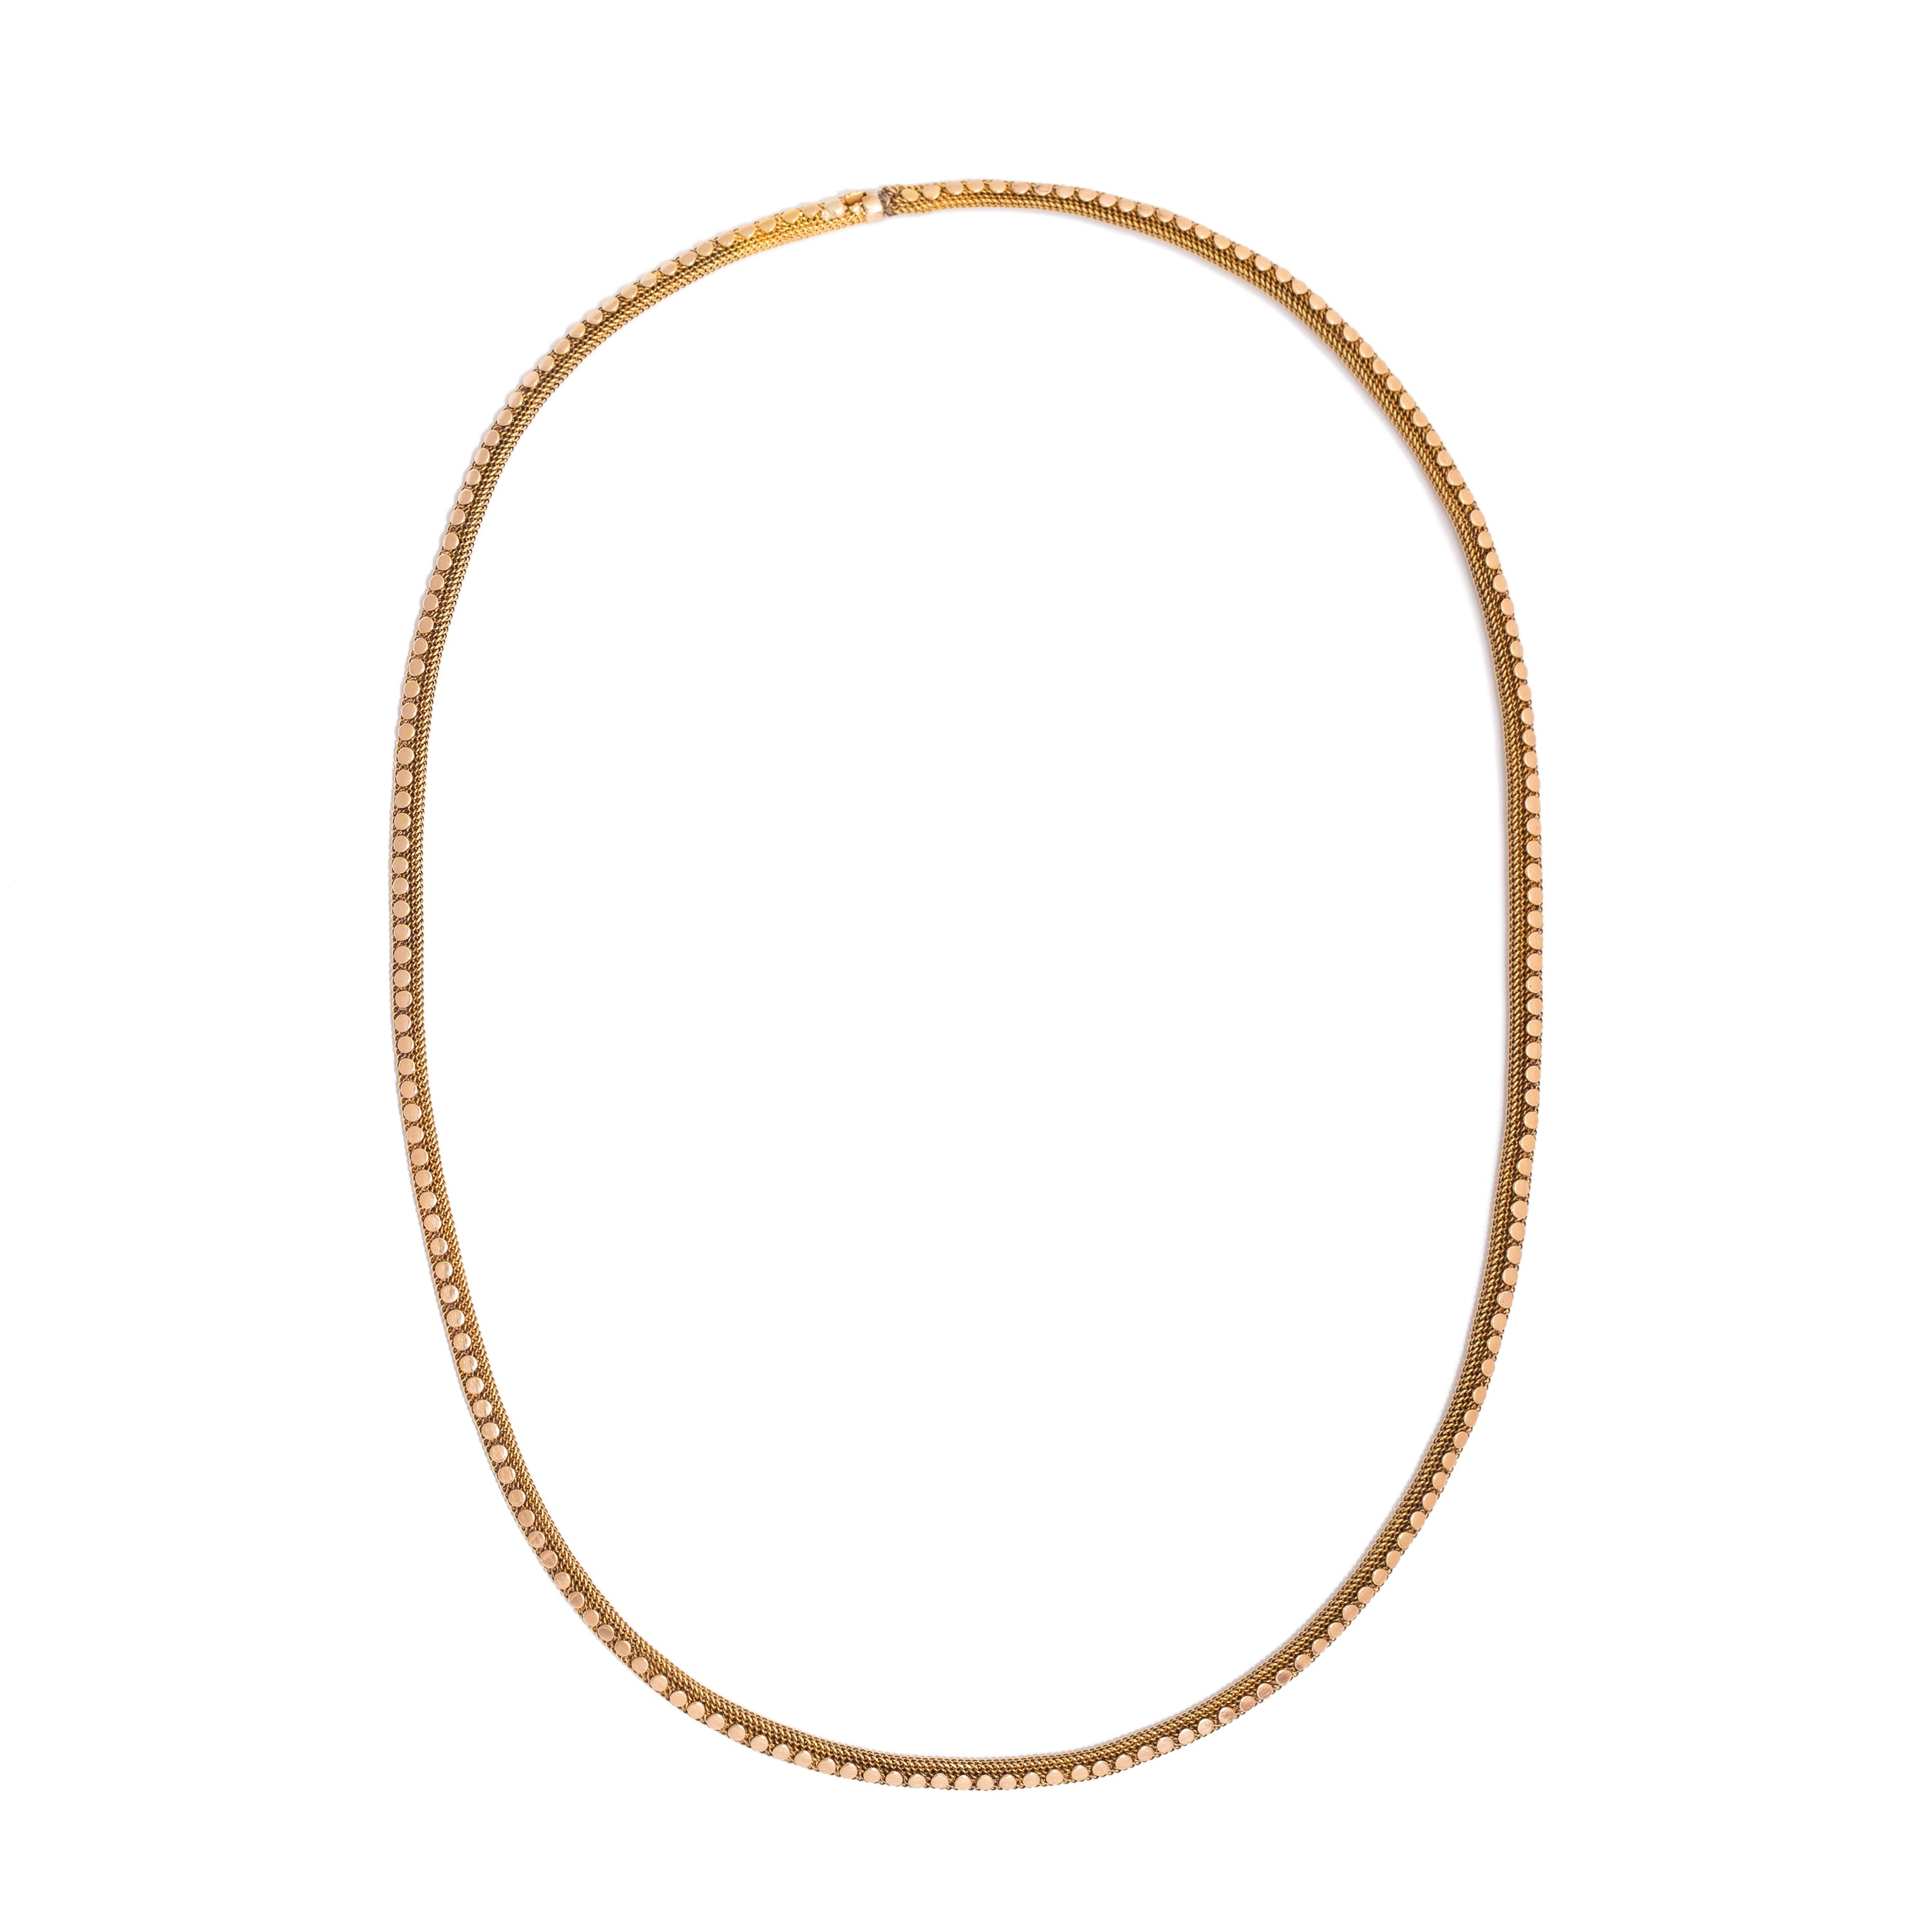 Victorian 18K Gold Mesh and Dot Chain Necklace